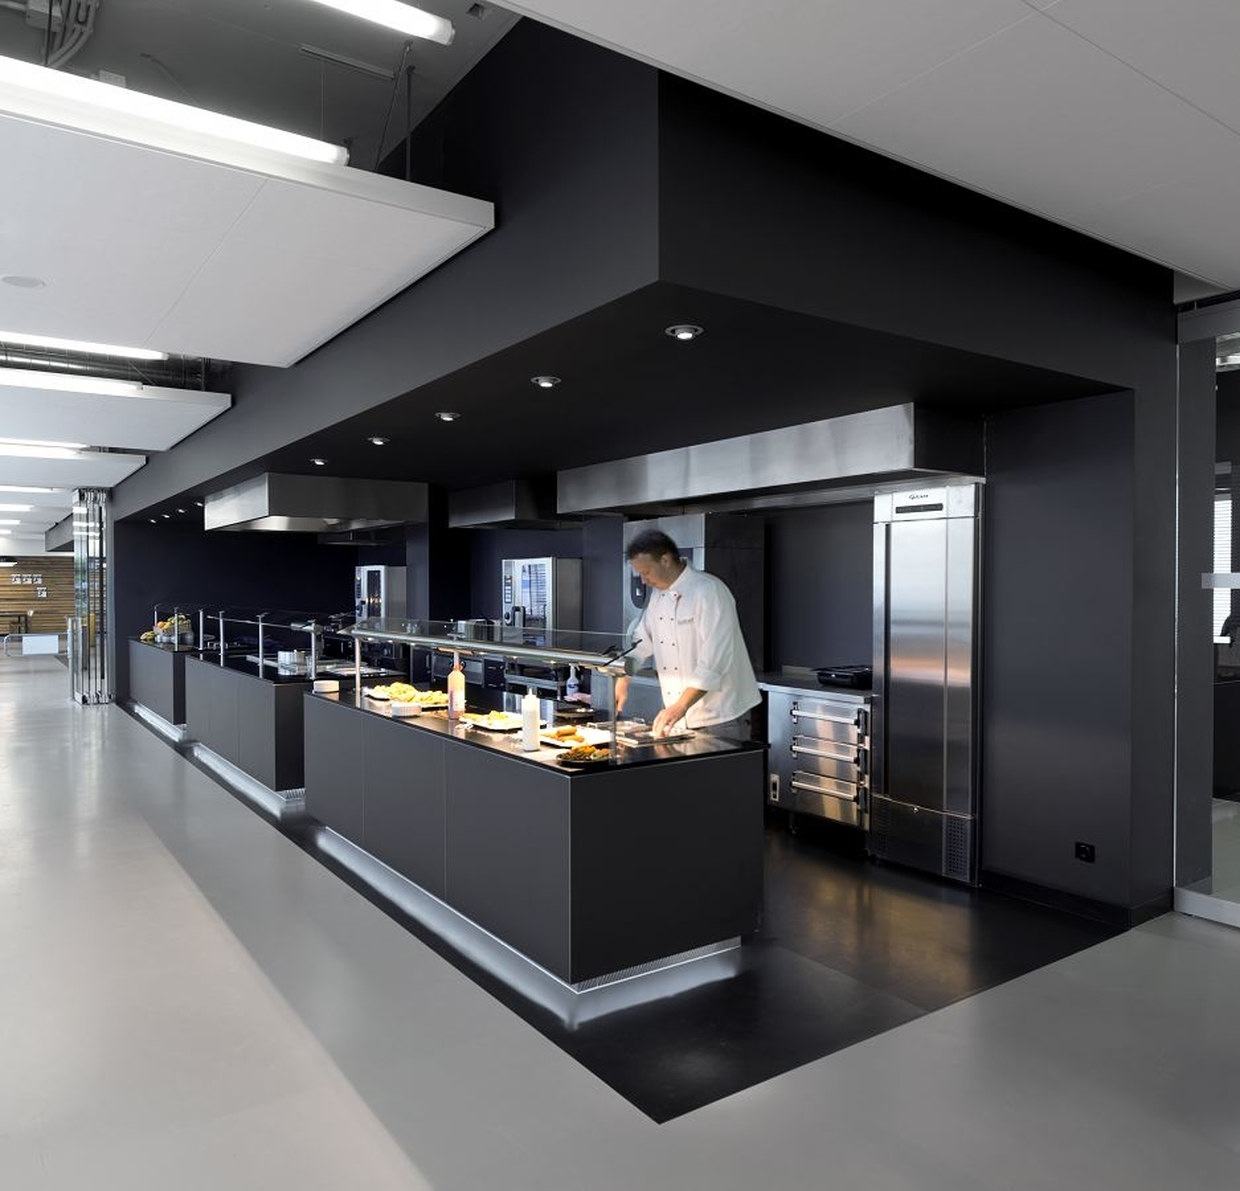 Kitchen Soffit Decor Ideas: Amstel Campus By OIII Architects